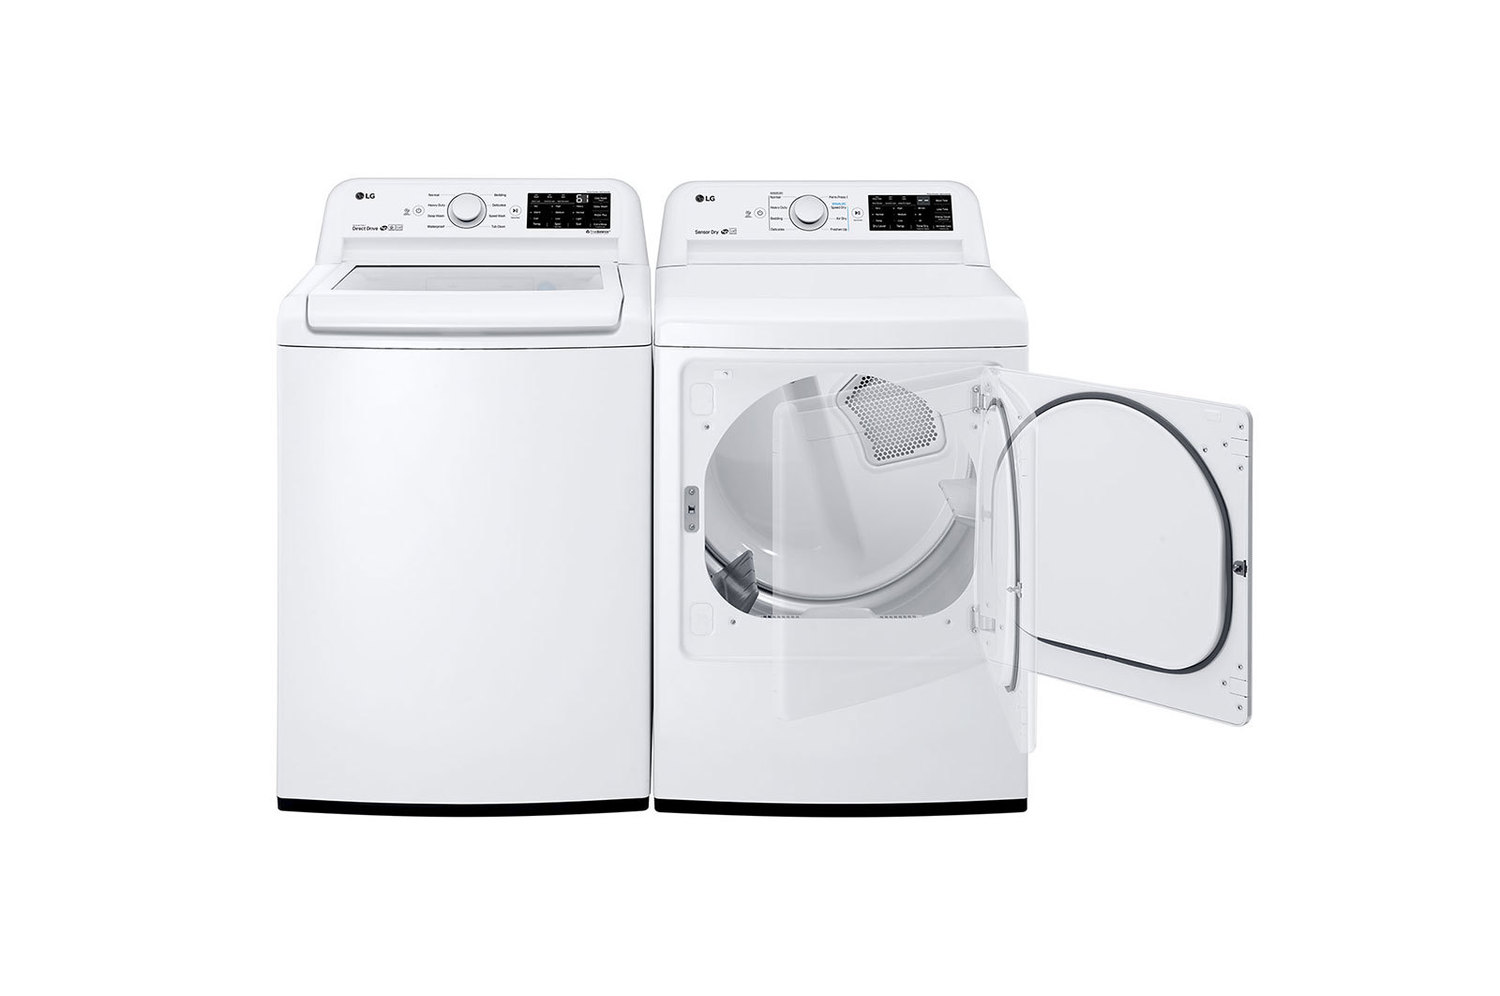 WT7100CW LG Appliances 4 5 cu  ft  Top Load Washer WHITE (W